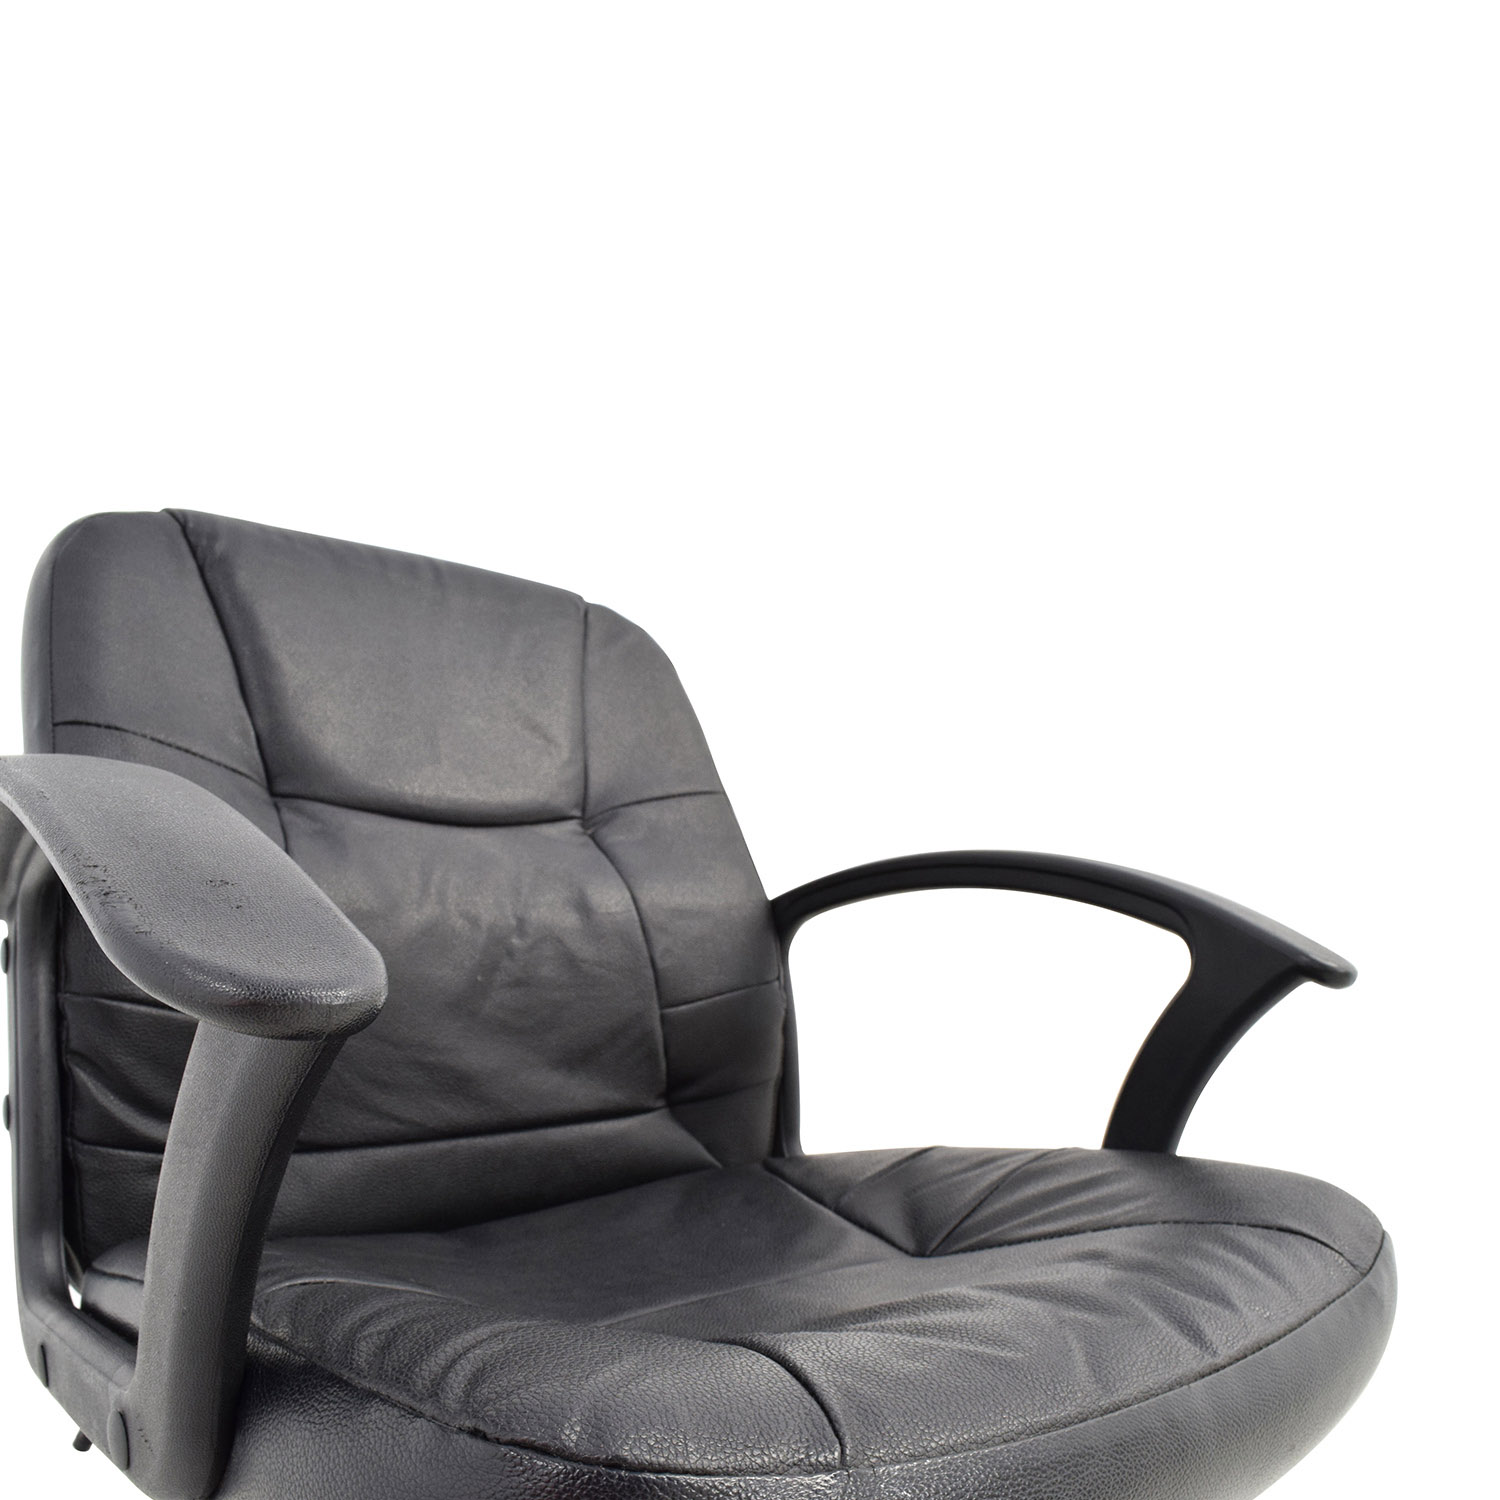 black leather desk chairs chair cover rentals las vegas 75 off adjustable